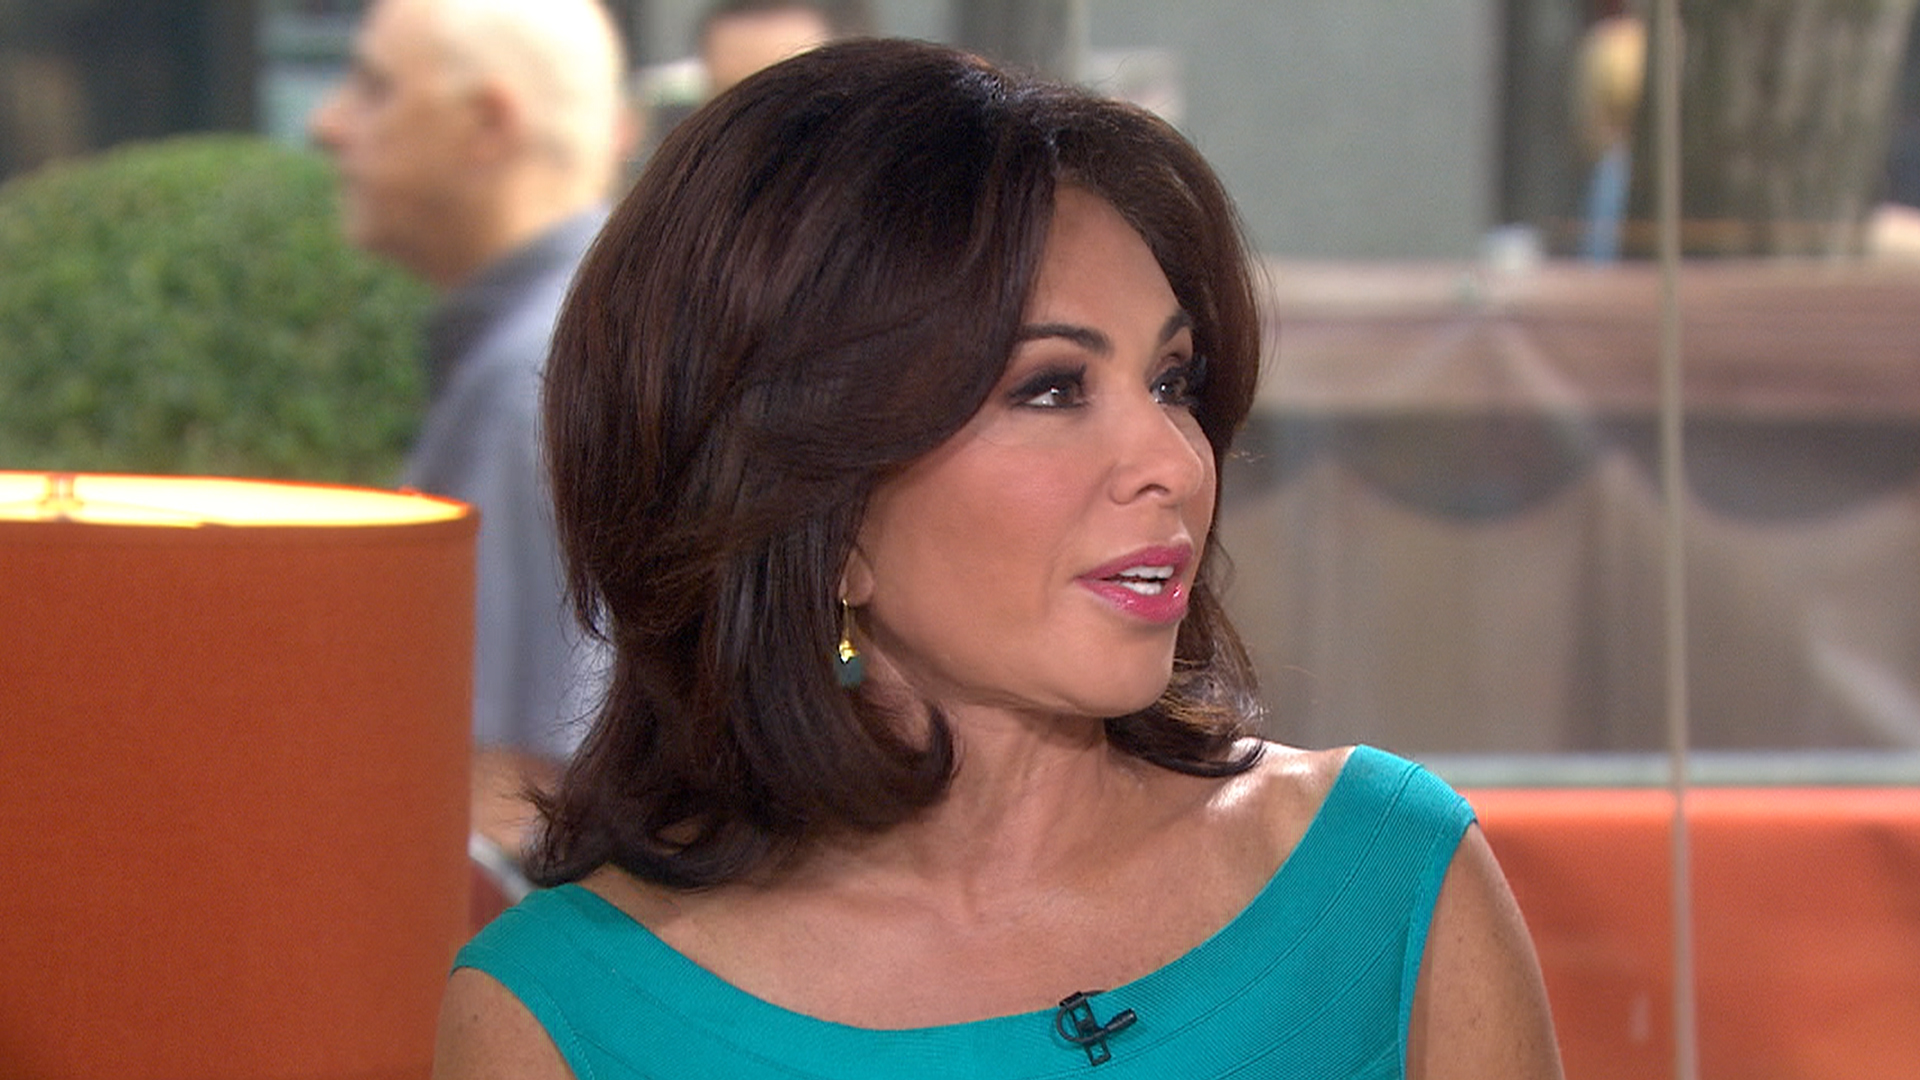 will joyce mitchell be charged? jeanine pirro weighs in